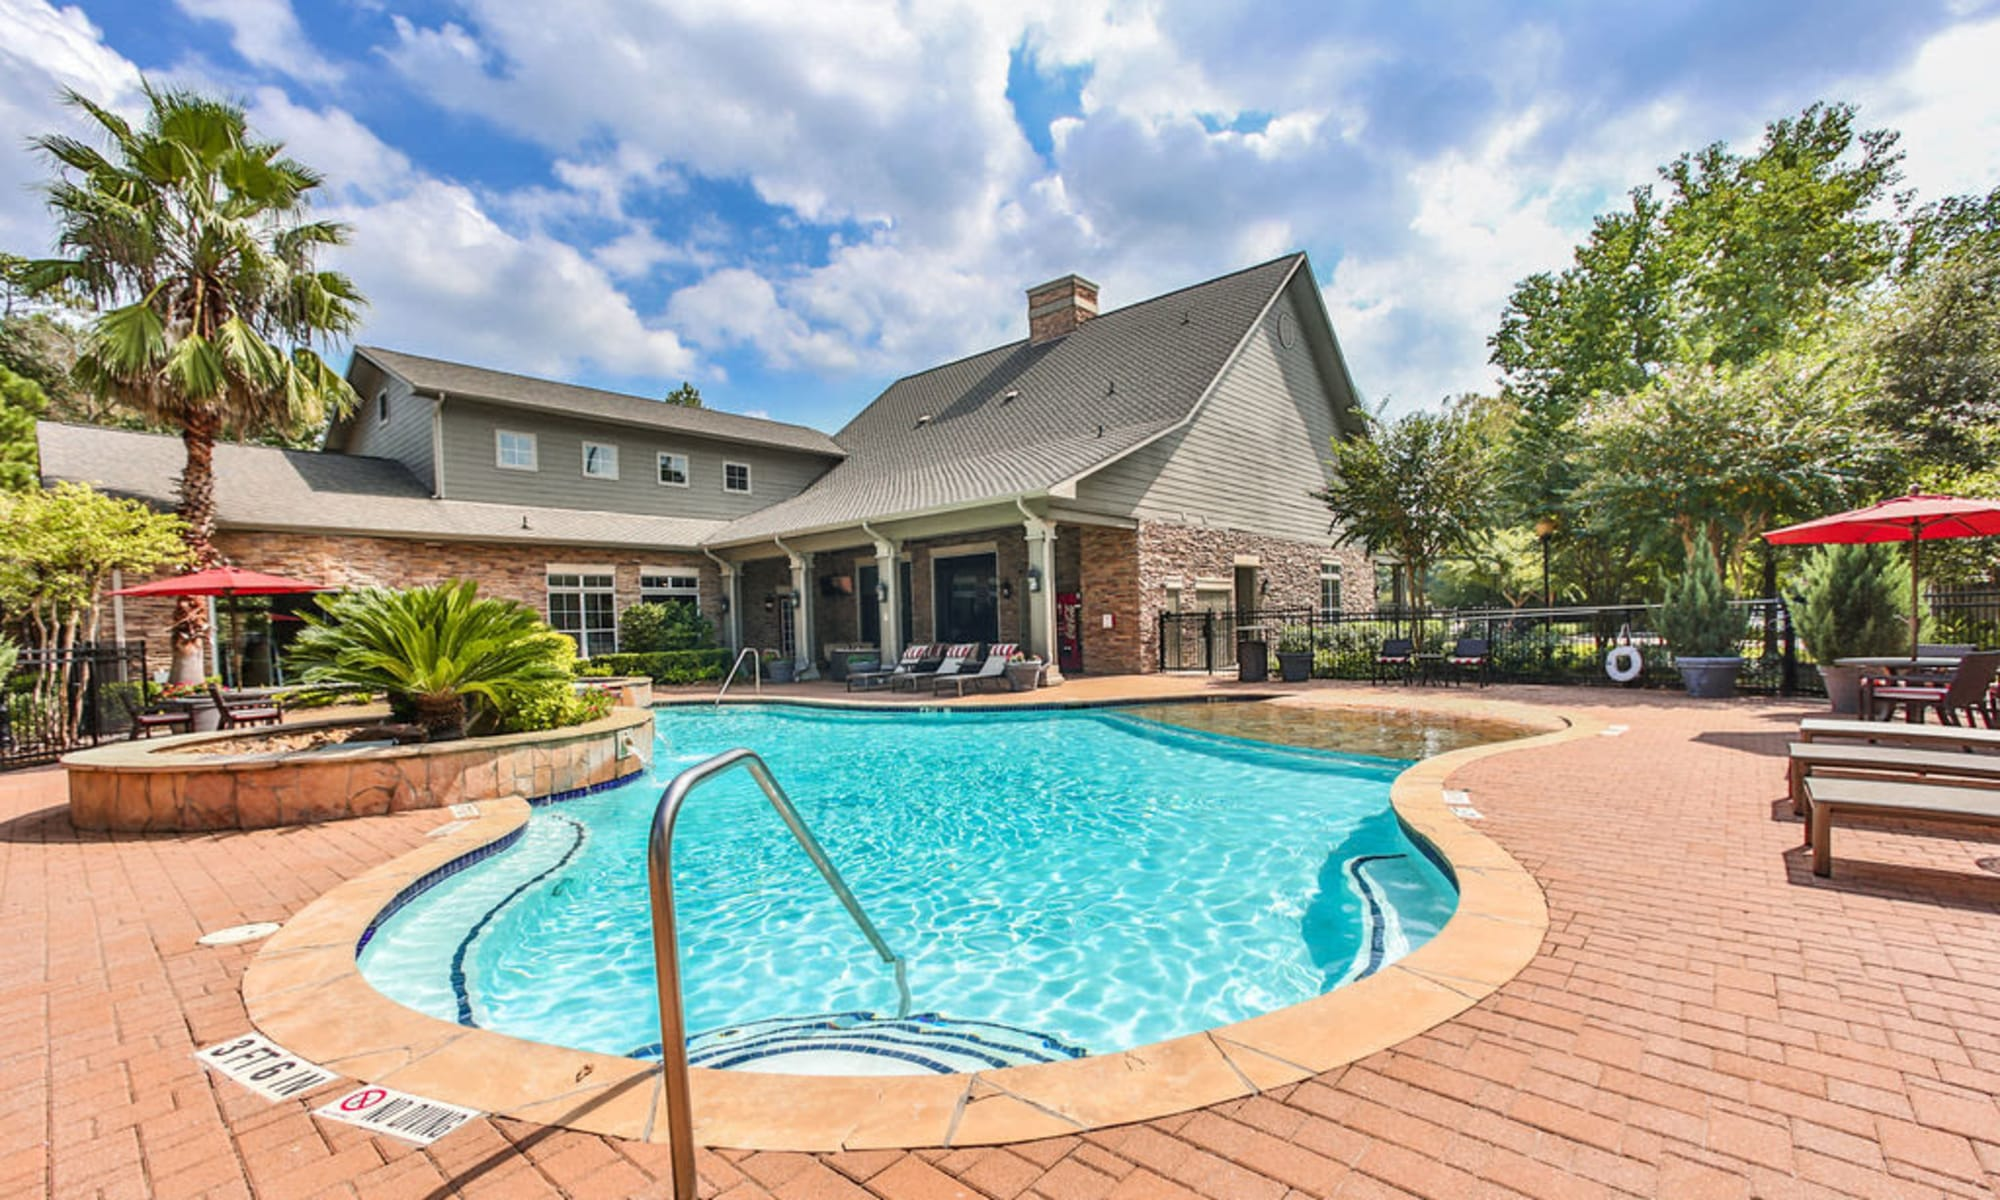 Apply online to live at Stone Creek at The Woodlands in The Woodlands, Texas